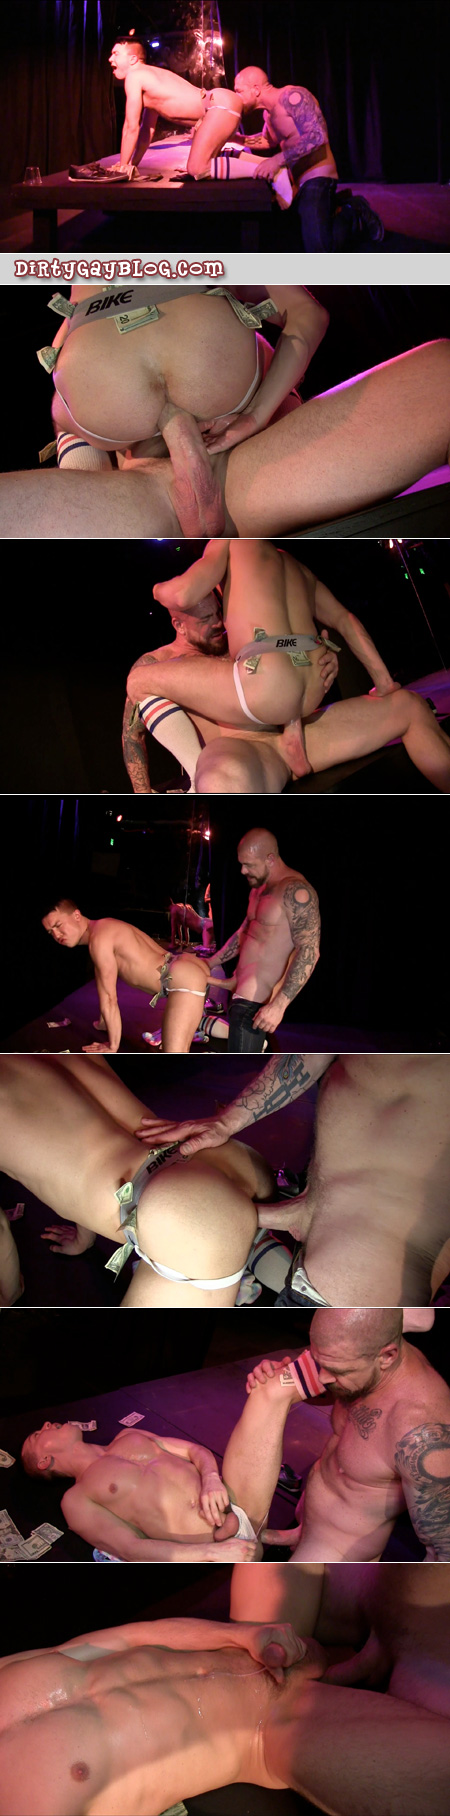 Bald muscle Daddy fucking a stripper in a jockstrap and OTC athletic socks bareback.